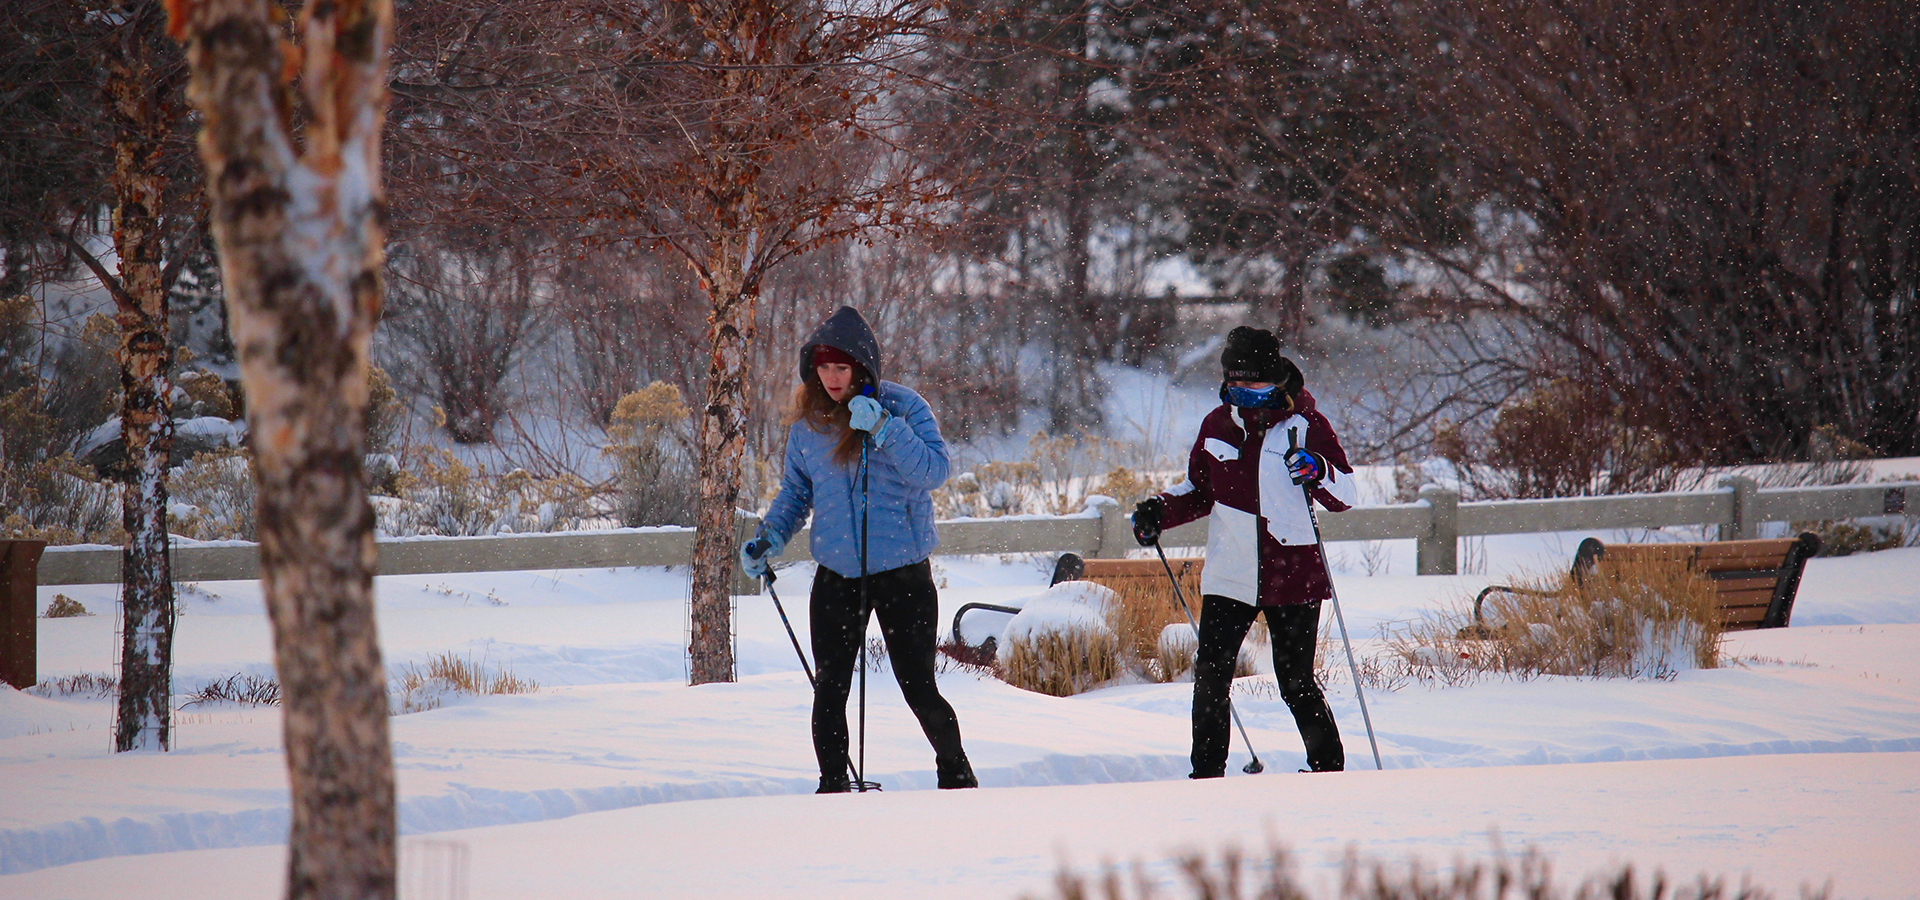 Riverbend-Park-Winter-XC-Skiing